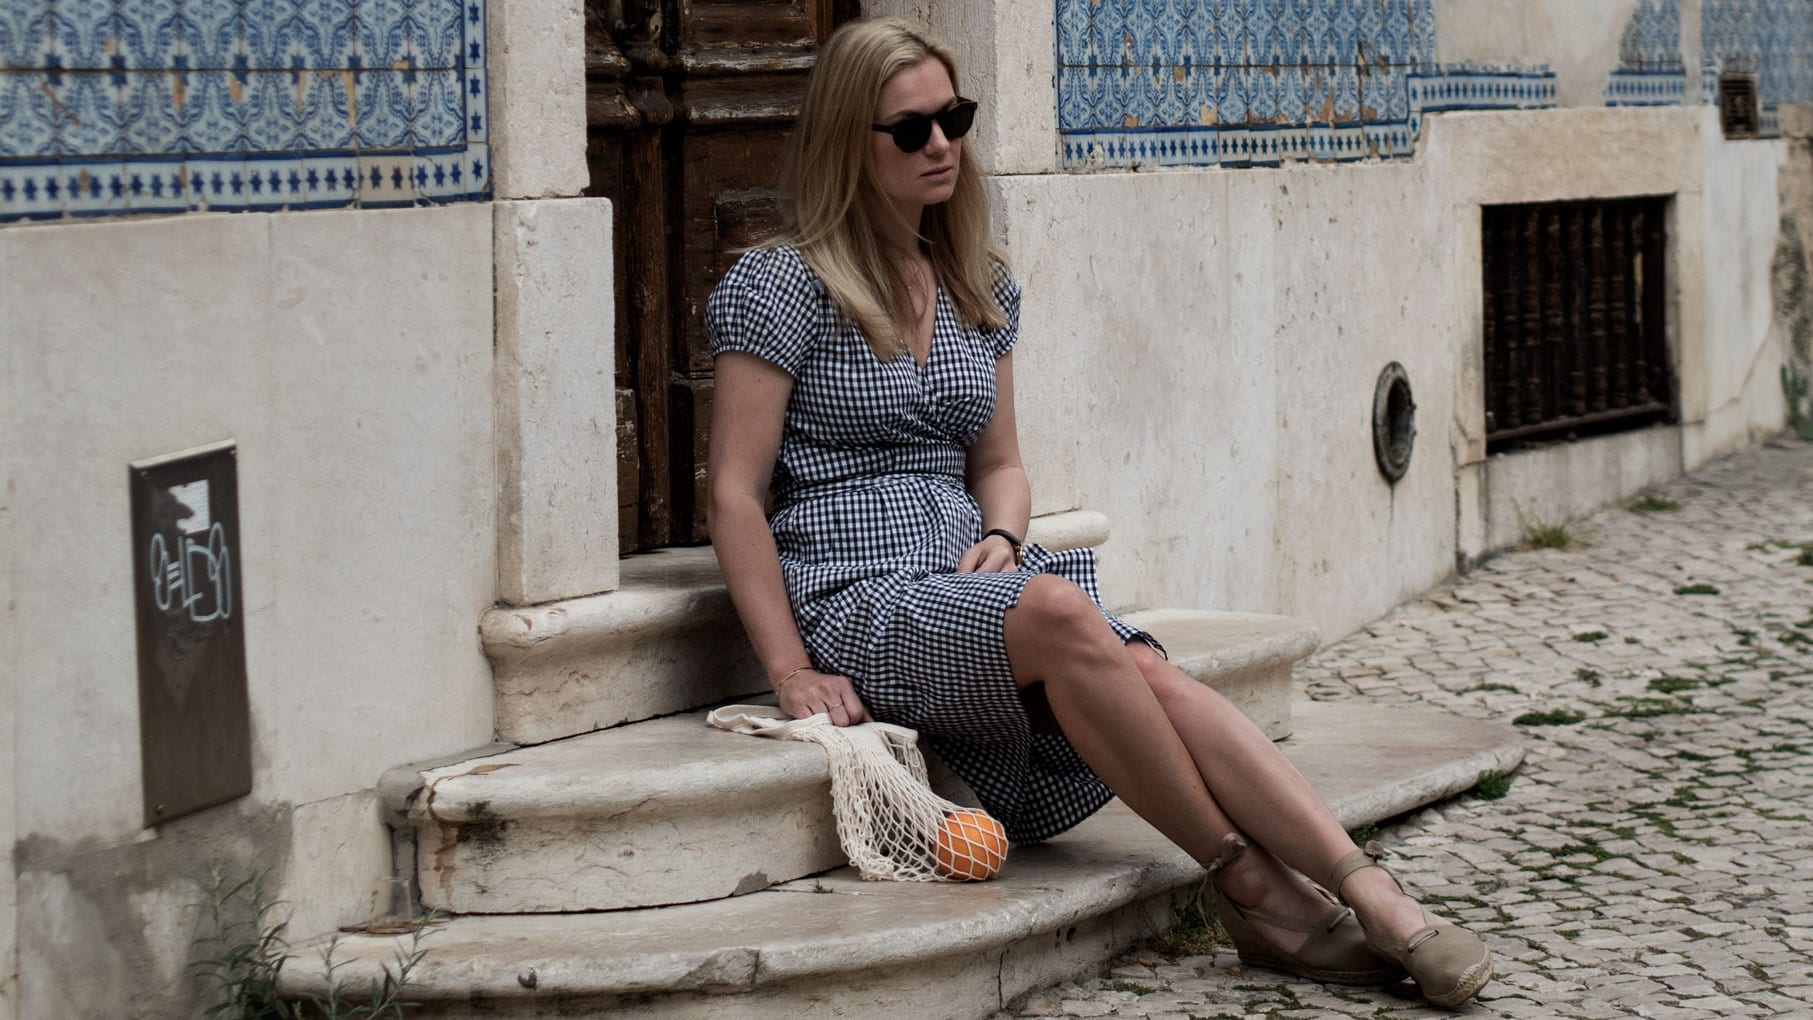 Justine Tabak Gingham Wrap Dress, Penelope Chilvers Espadrilles & Labour & Wait String Bag